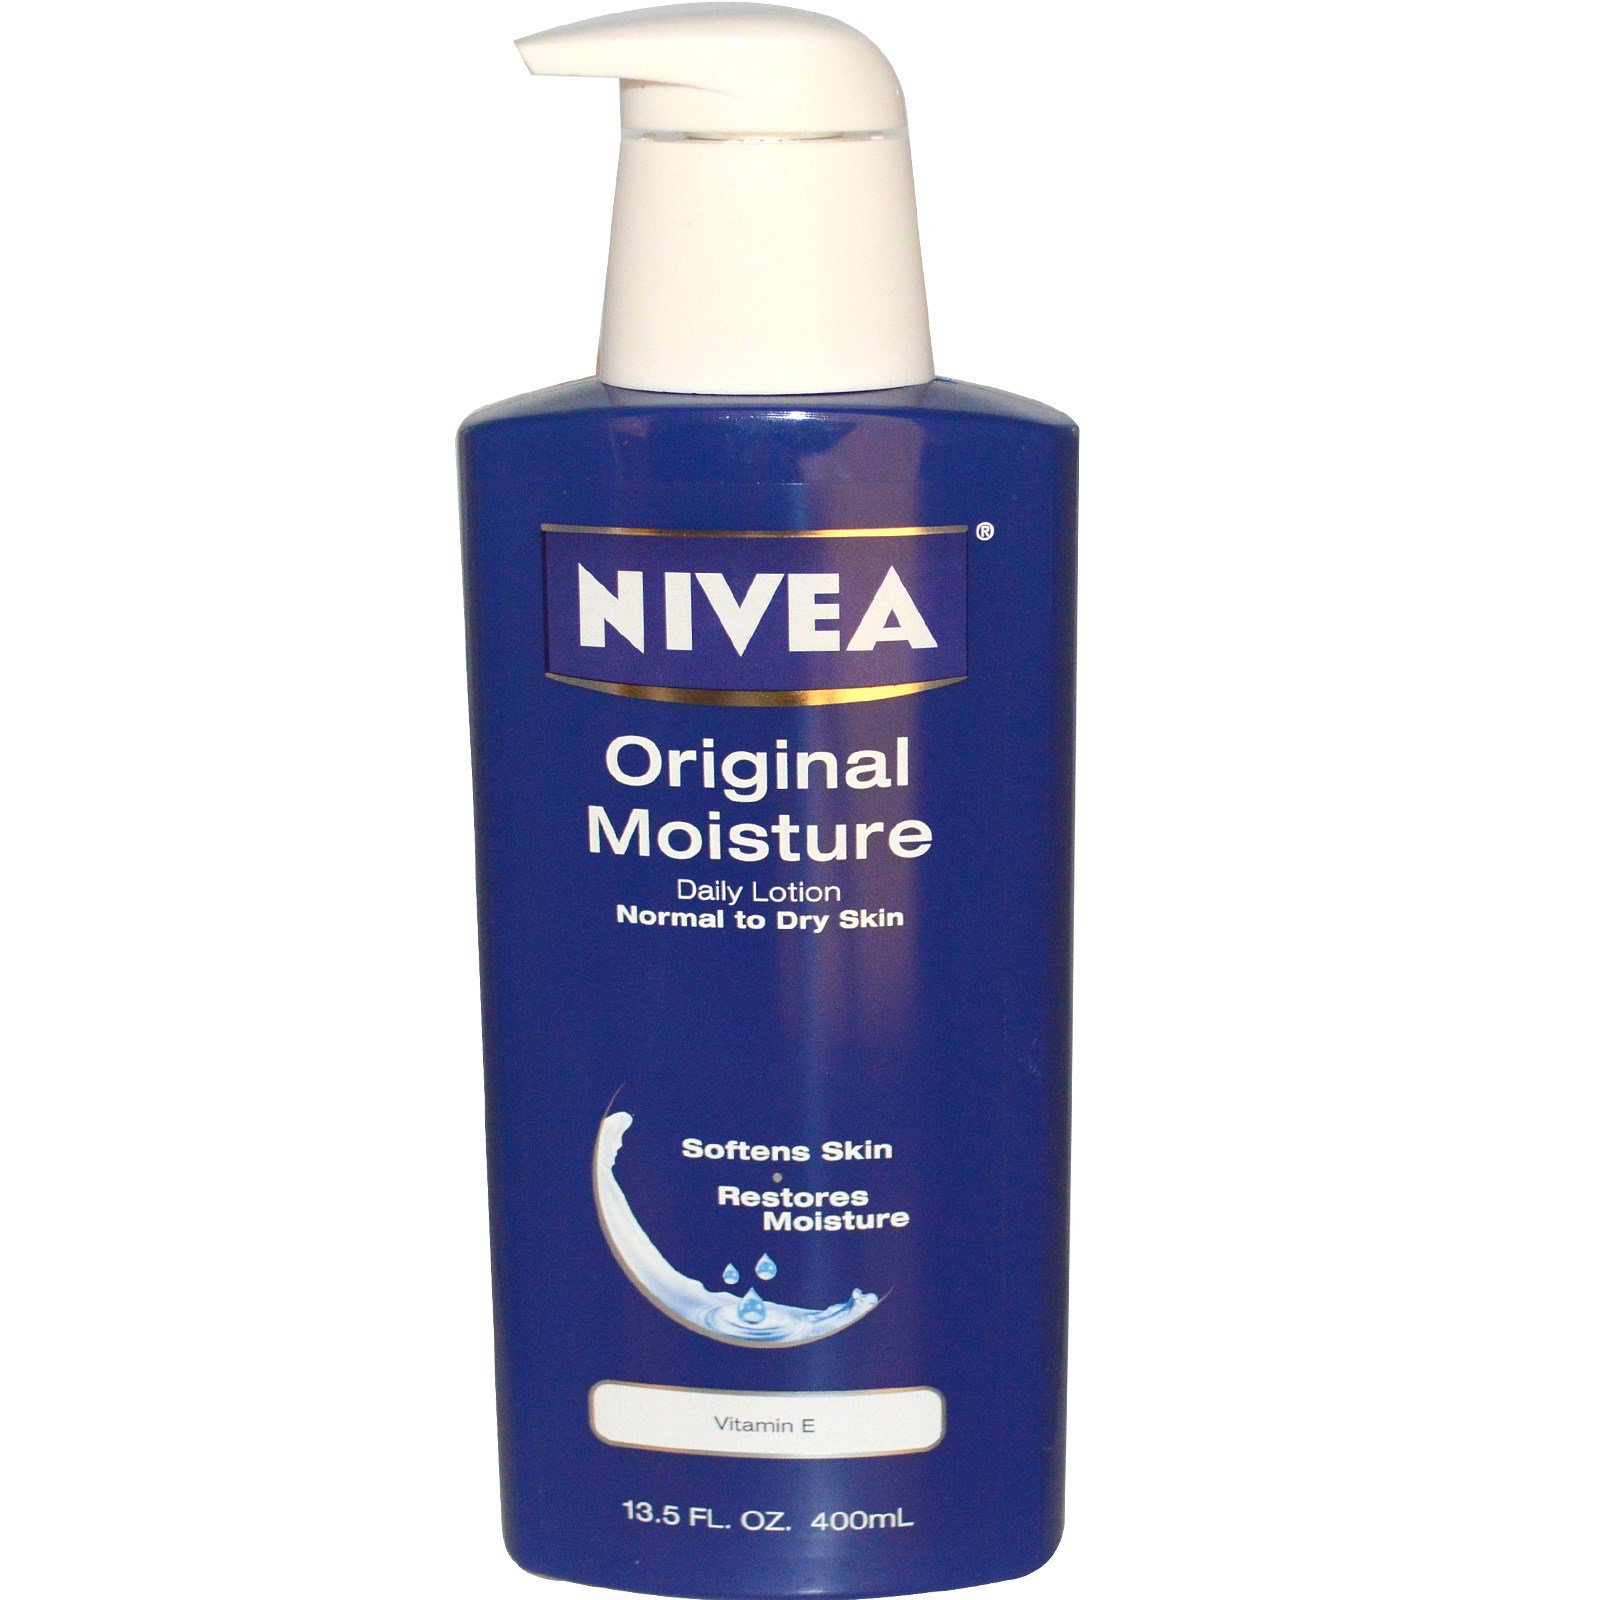 Nivea Original Moisture Daily Lotion Vitamin E 13 5 Fl